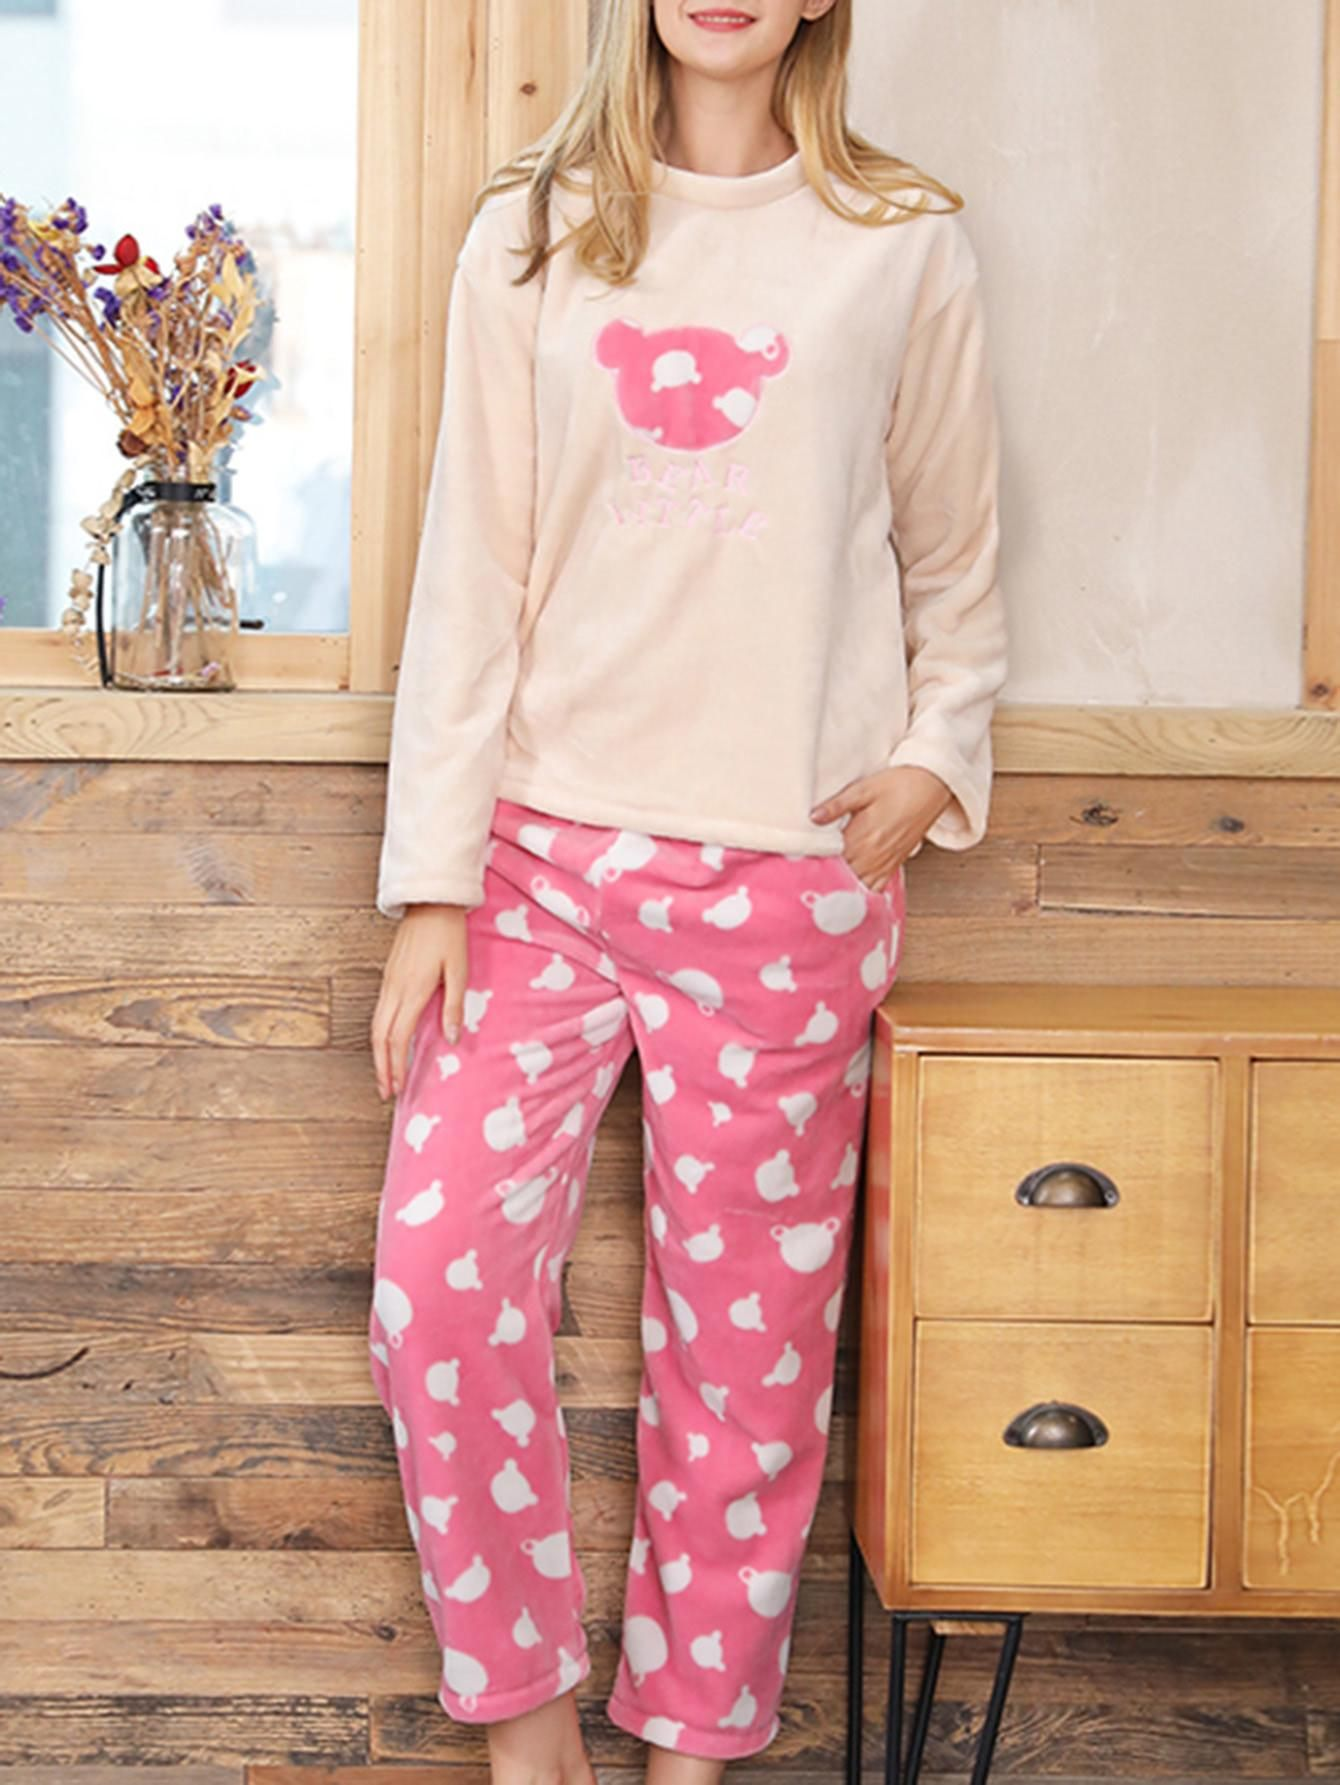 079d383215 #Valentines #AdoreWe #SheIn - #SheIn Bear Embroidered Plush Top & Pants Pj